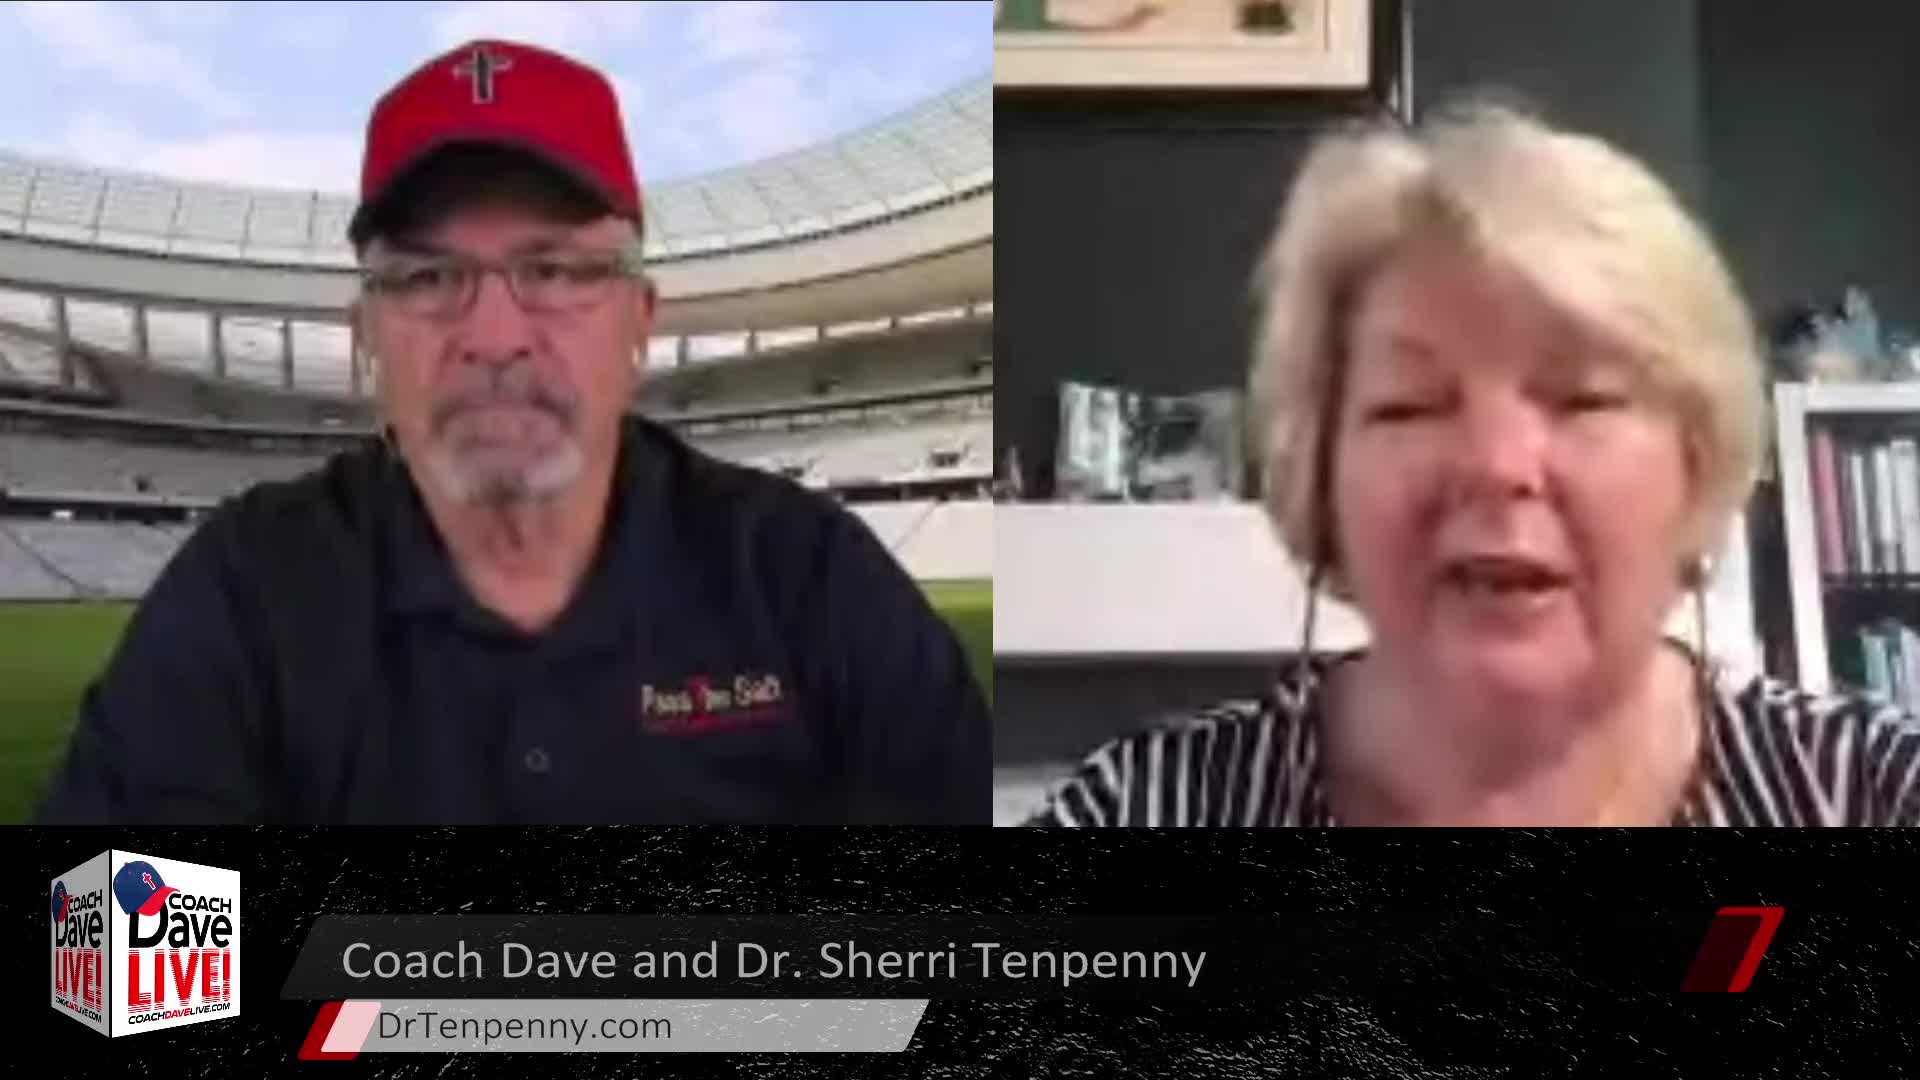 Coach Dave LIVE | 5-21-2021 | SPECIAL GUEST DR. SHERRI TENPENNY - AUDIO ONLY